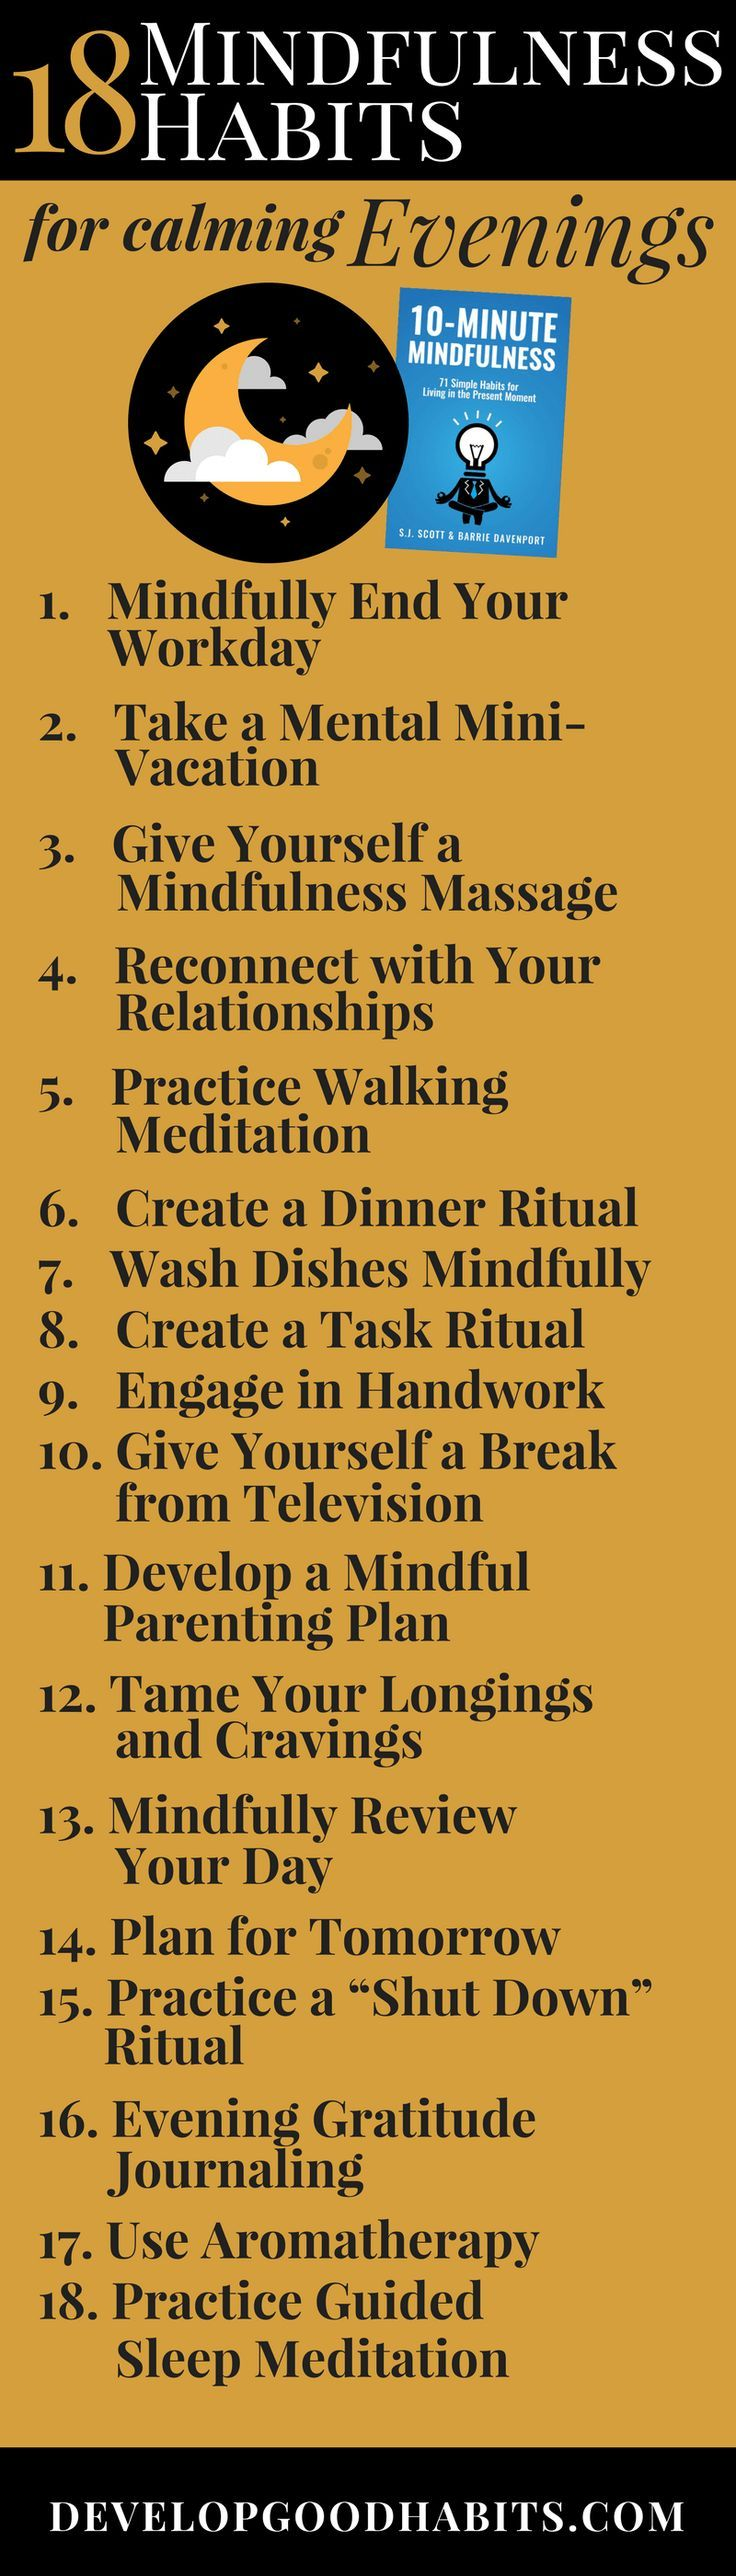 18 calming evening mindfulness exercises - The evening can be one of the best times to be mindful. It can be a time to reflect, calm and get in a positive head-space for the next day. This mindfulness inforgraphic shows 18 mindfulness habits you could practice in he evening to help calm, ground and center your being in the present moment. | Mindfulness & Meditation ---see more....